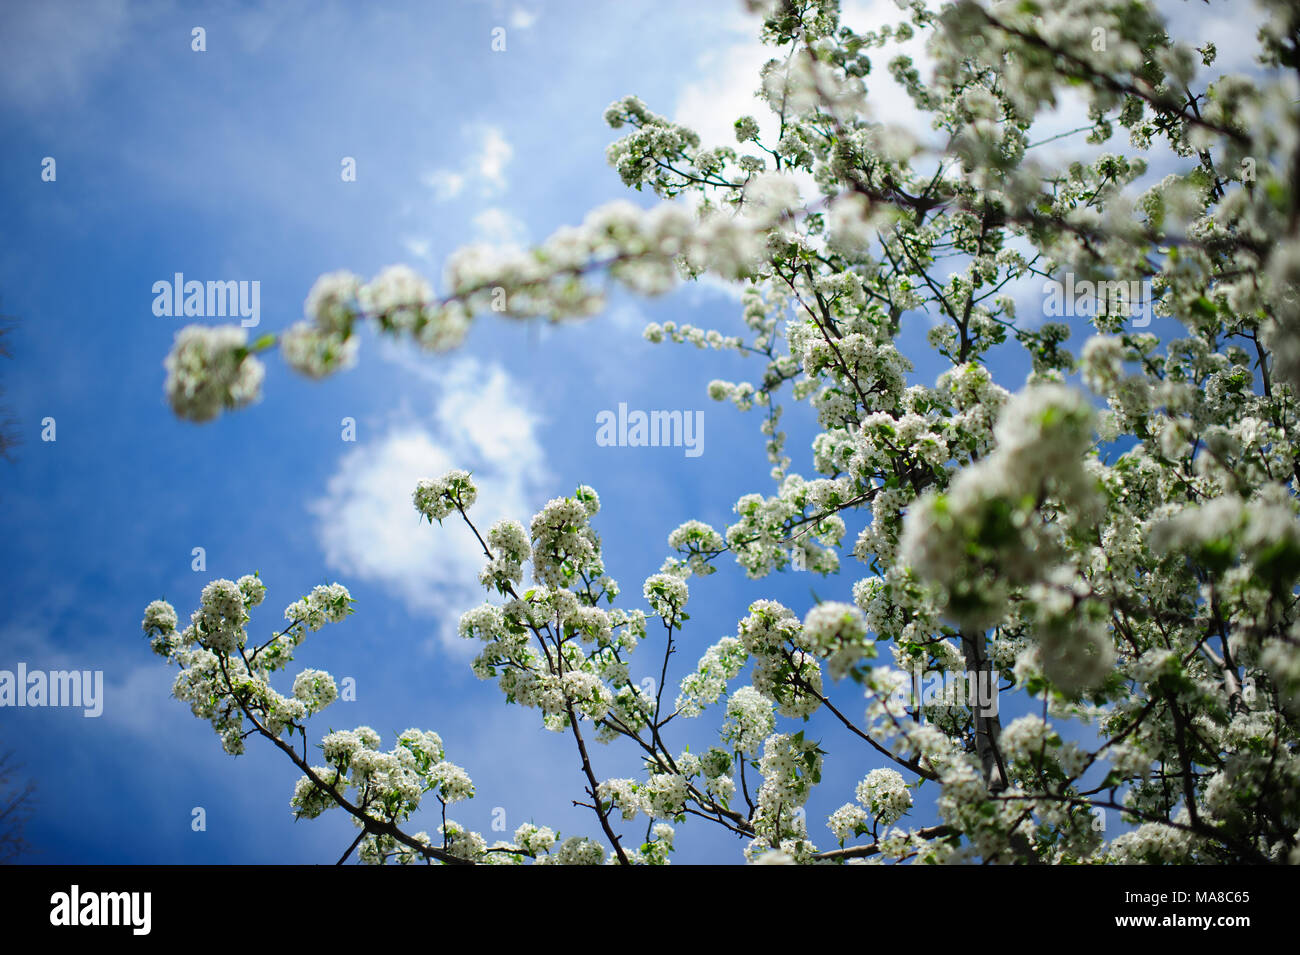 Flowering crabapple trees stock photos flowering crabapple trees white flowers on a blooming crabapple tree seen against the blue sky during spring in izmirmasajfo Images